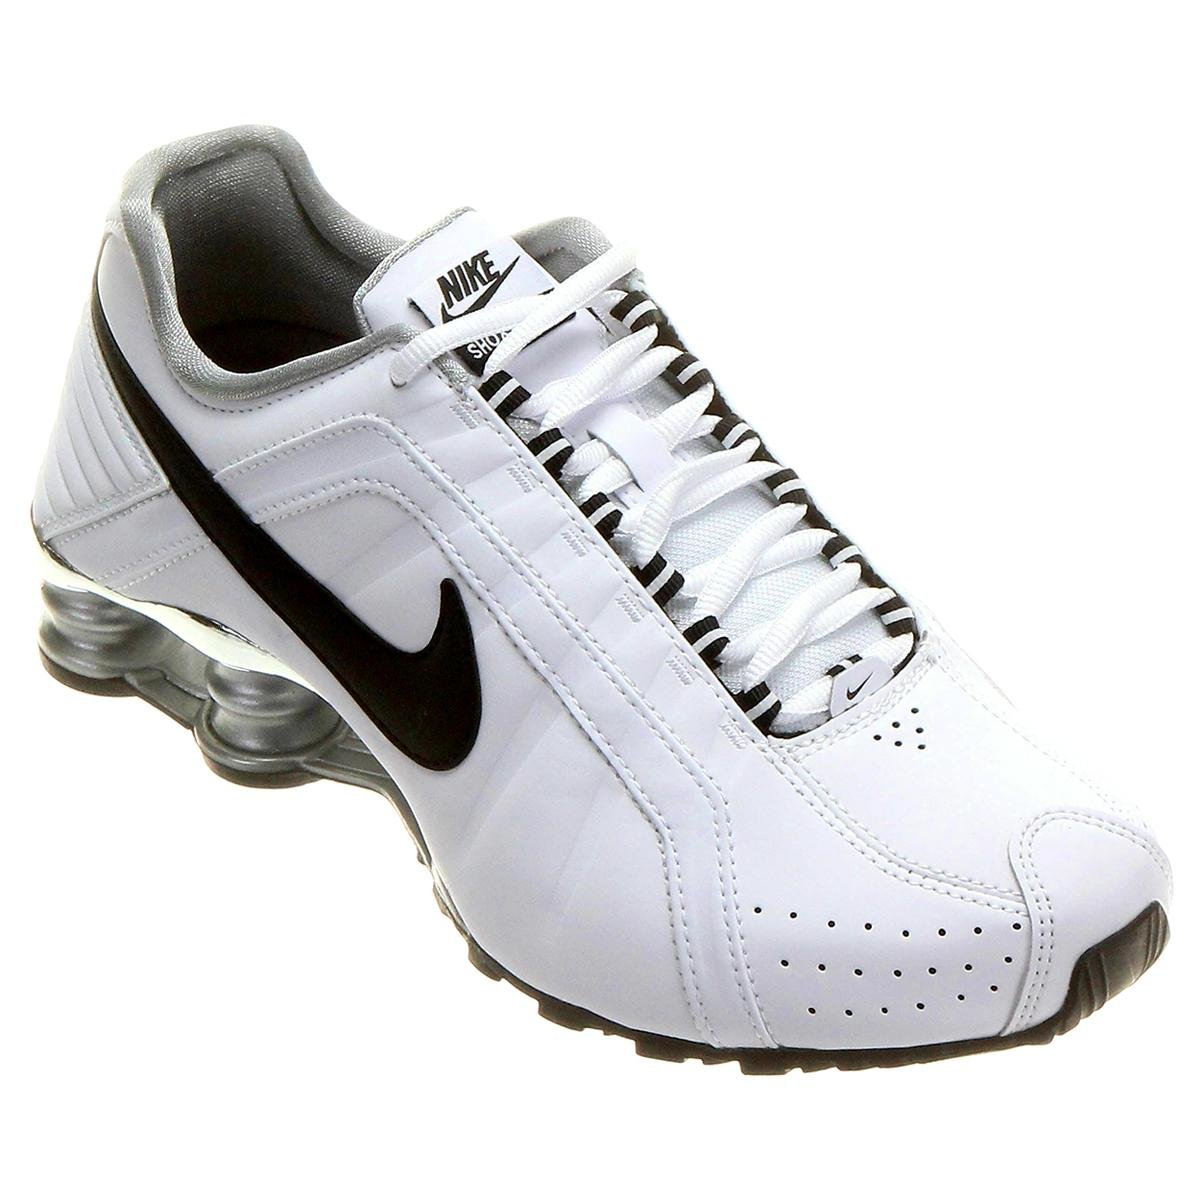 on sale 8079b 3b8c1 Tênis Nike Shox Junior   Shop Timão